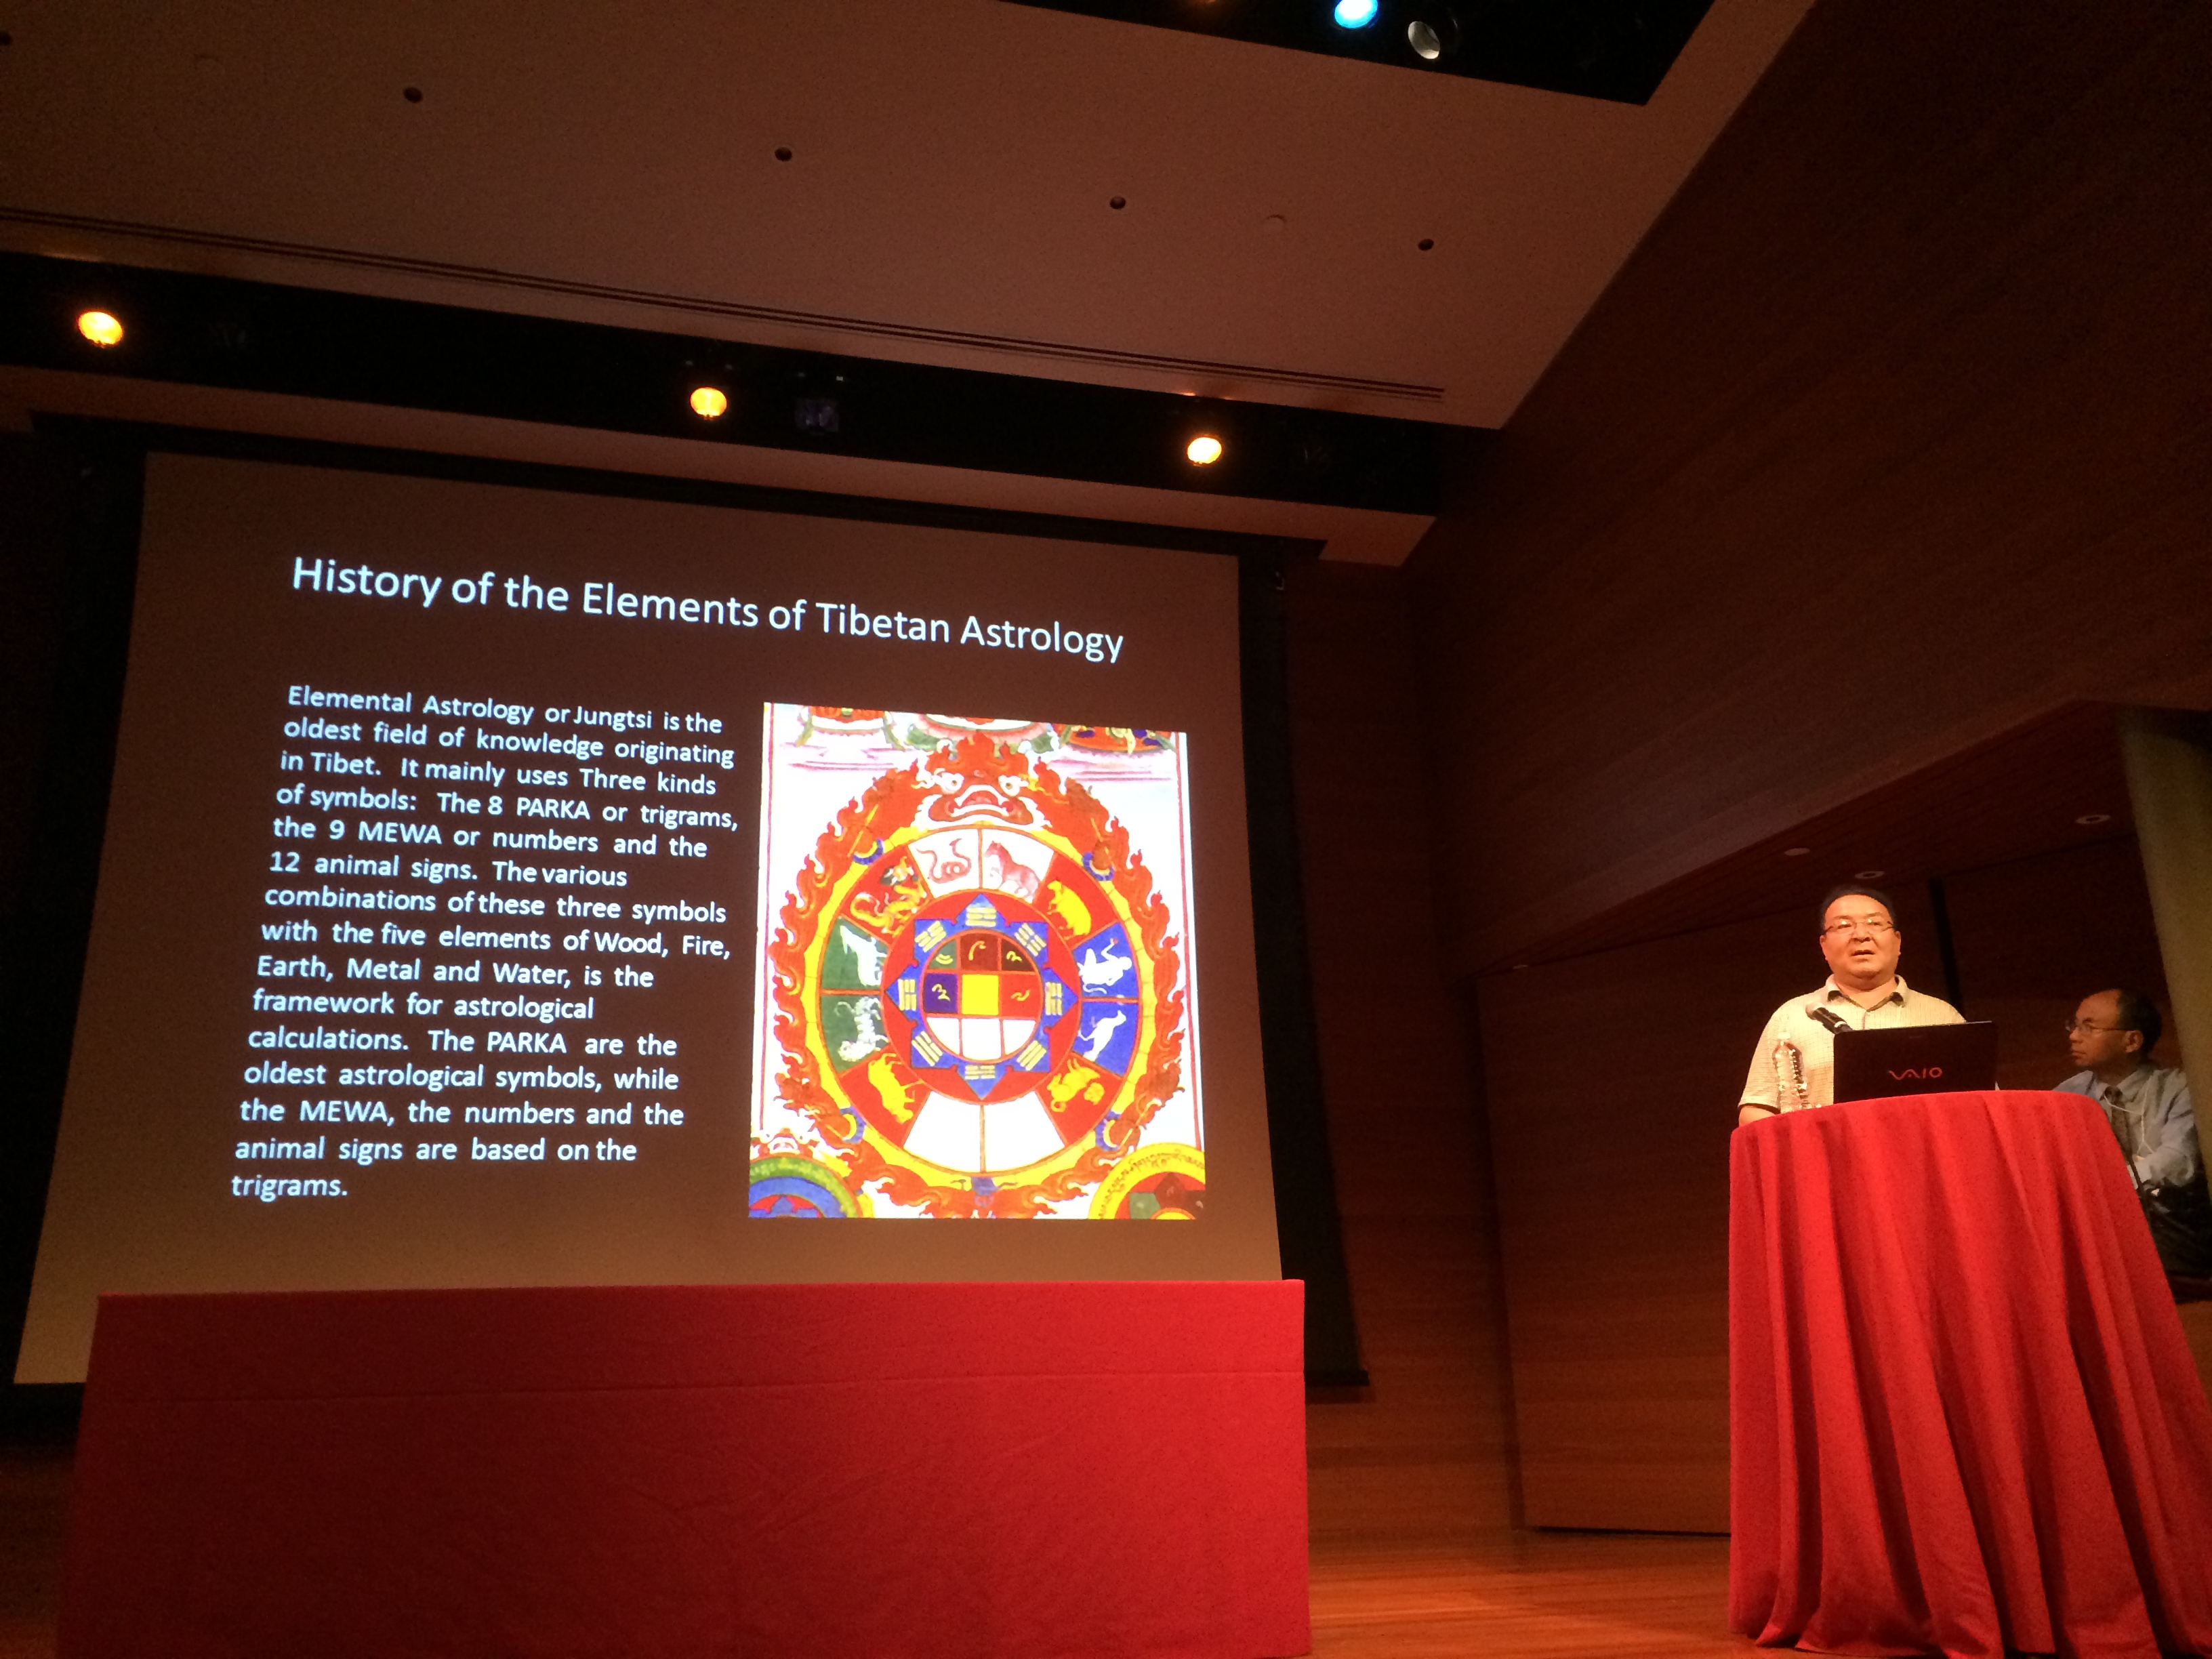 Dr. Thubten Phuntsok presents on the Origins of Tibetan Medicine and Astrology